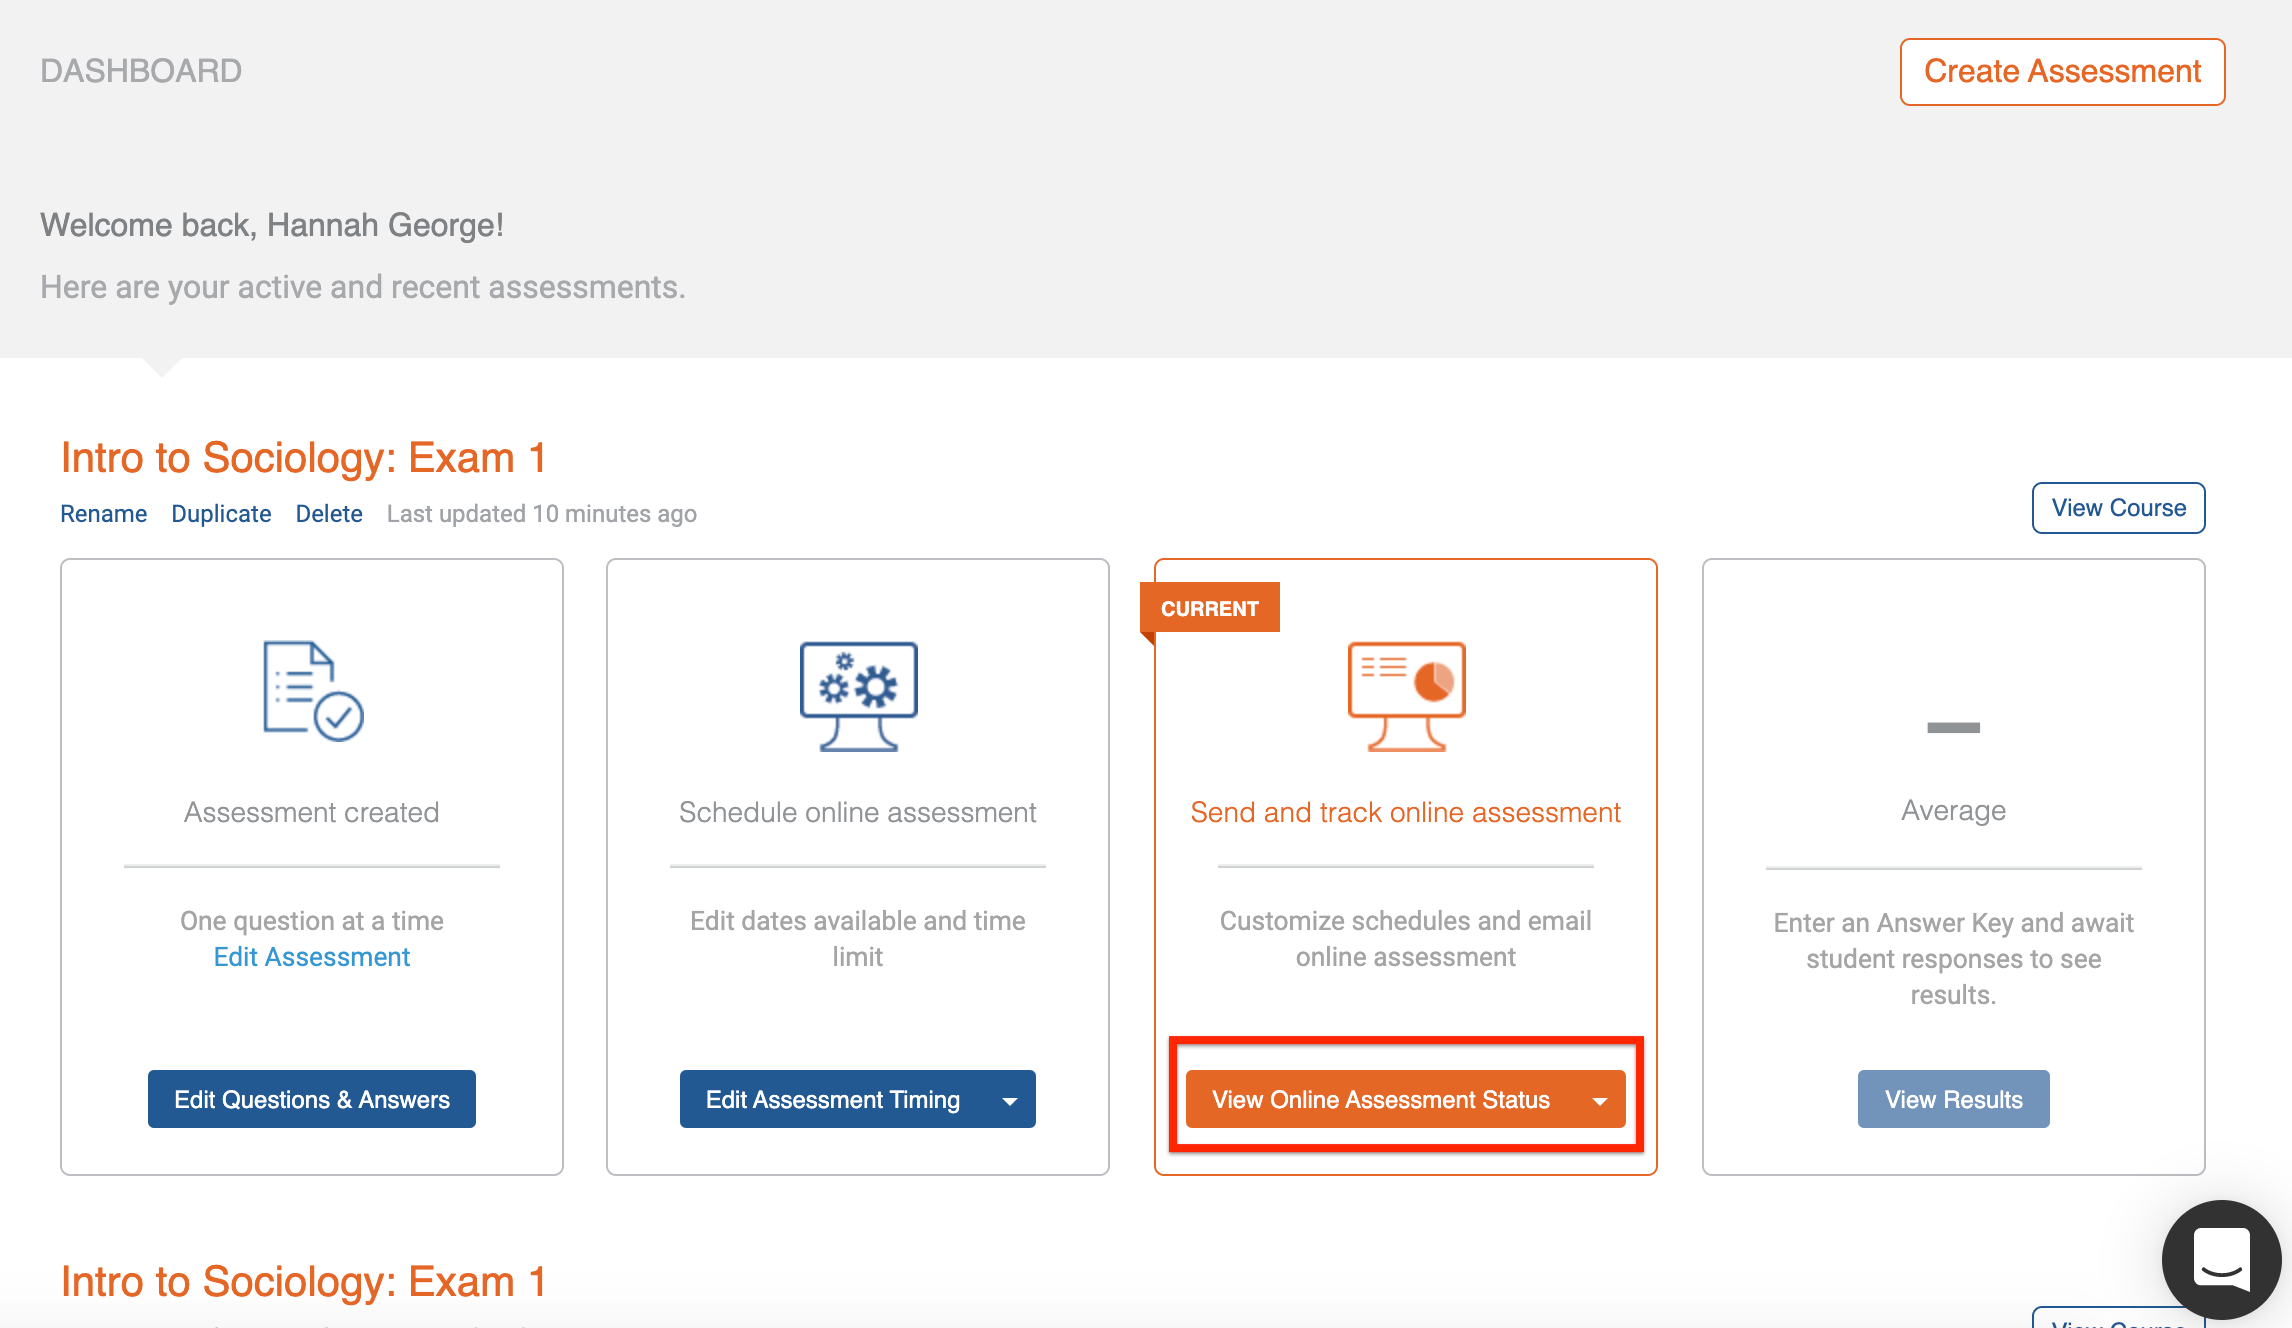 View Online Assessment Status button on course dashboard tiles